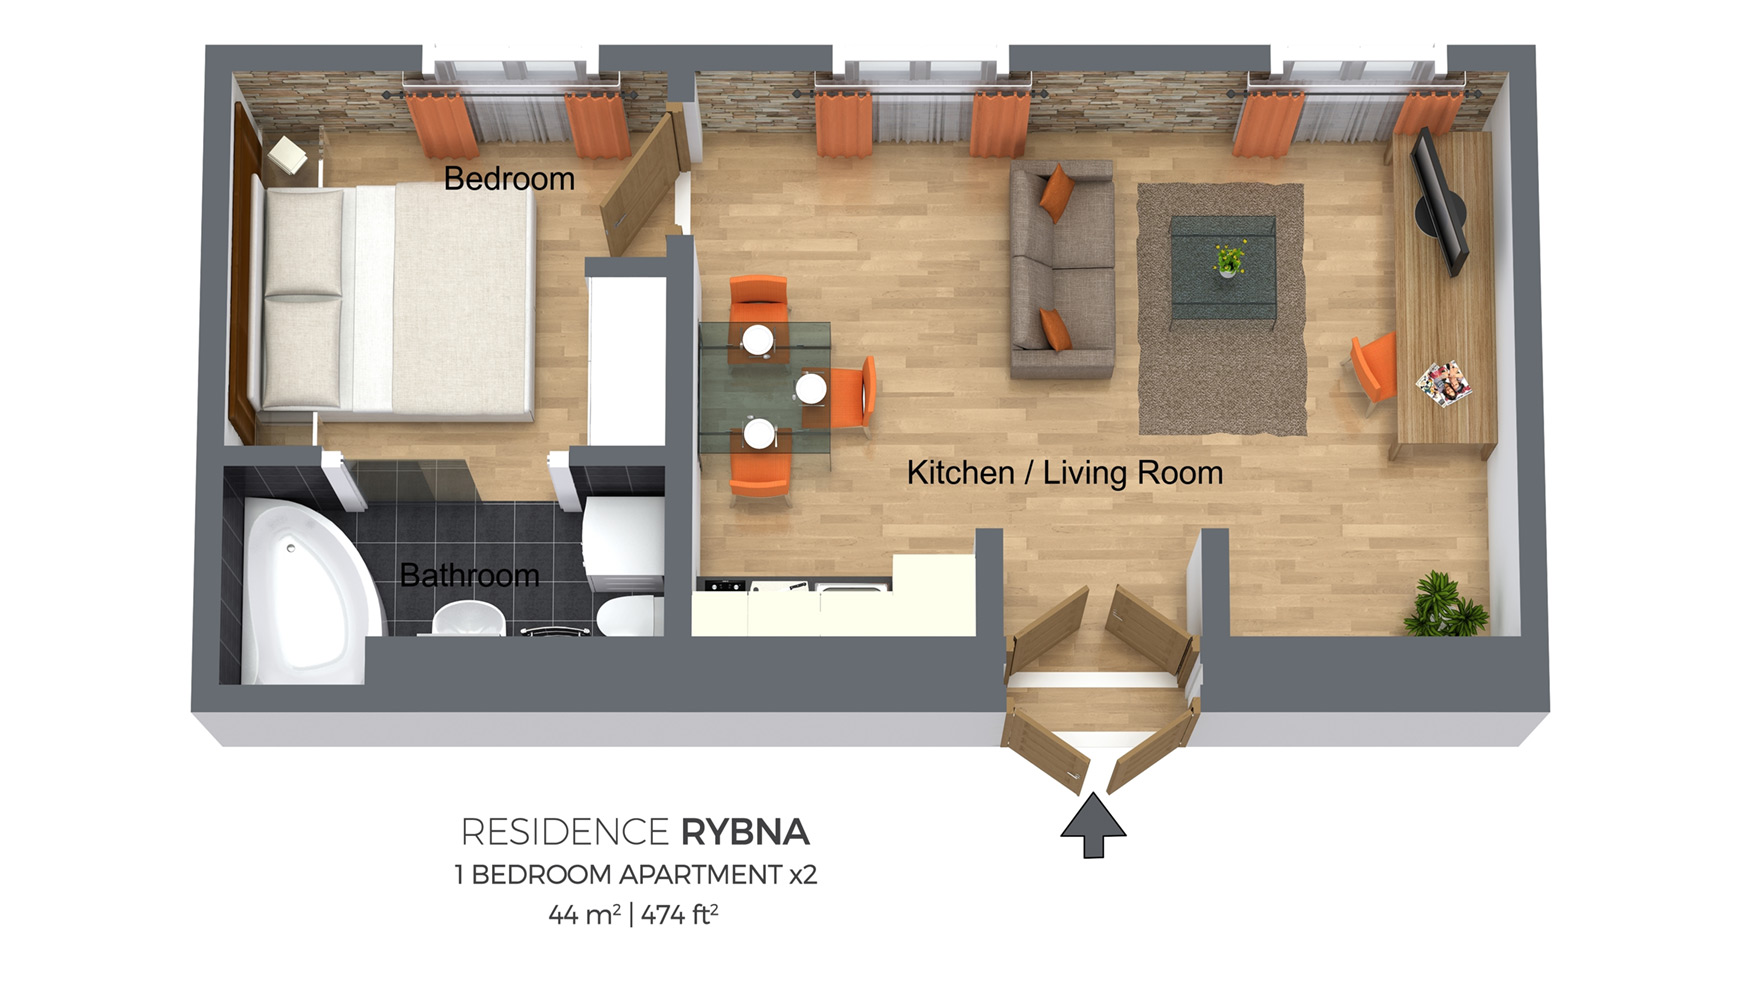 One Bedroom Apartment Type 2 | Residence Rybna